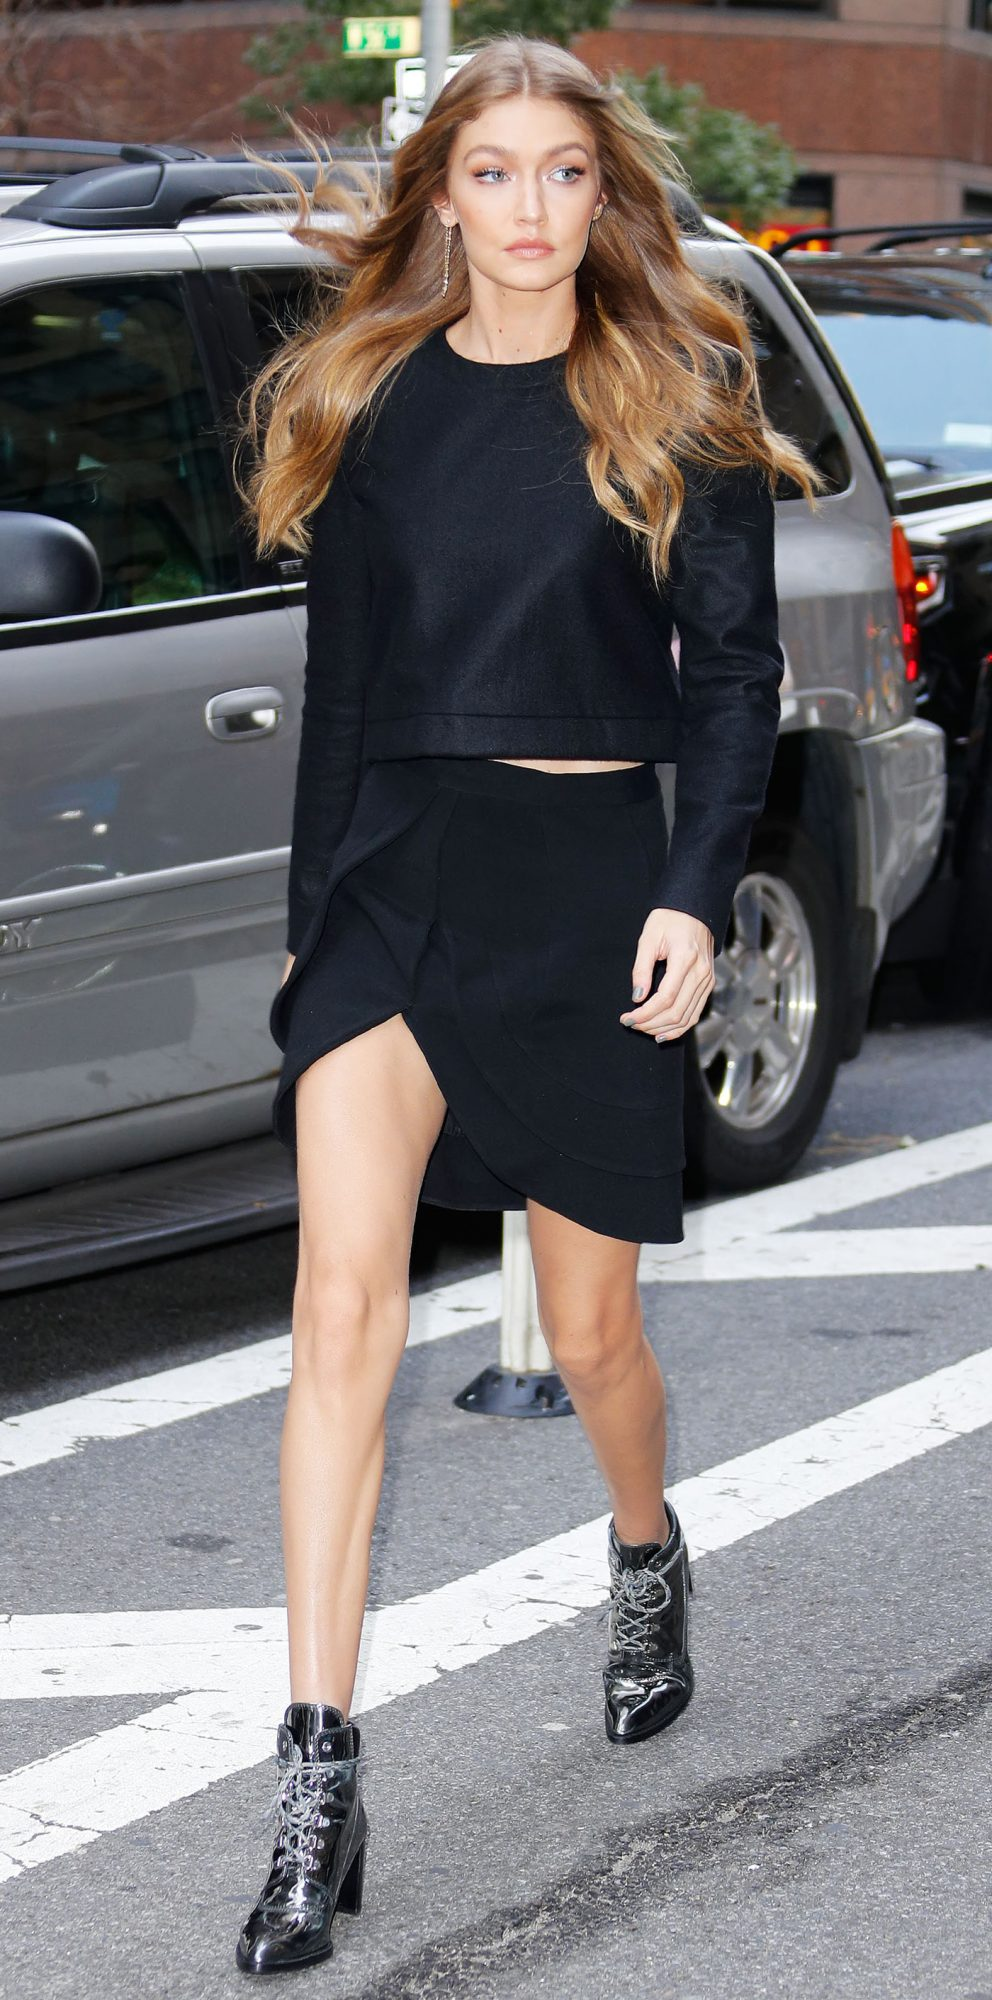 Gigi Hadid Slays In Brandon Maxwell Crop Top And Skirt In N Y C